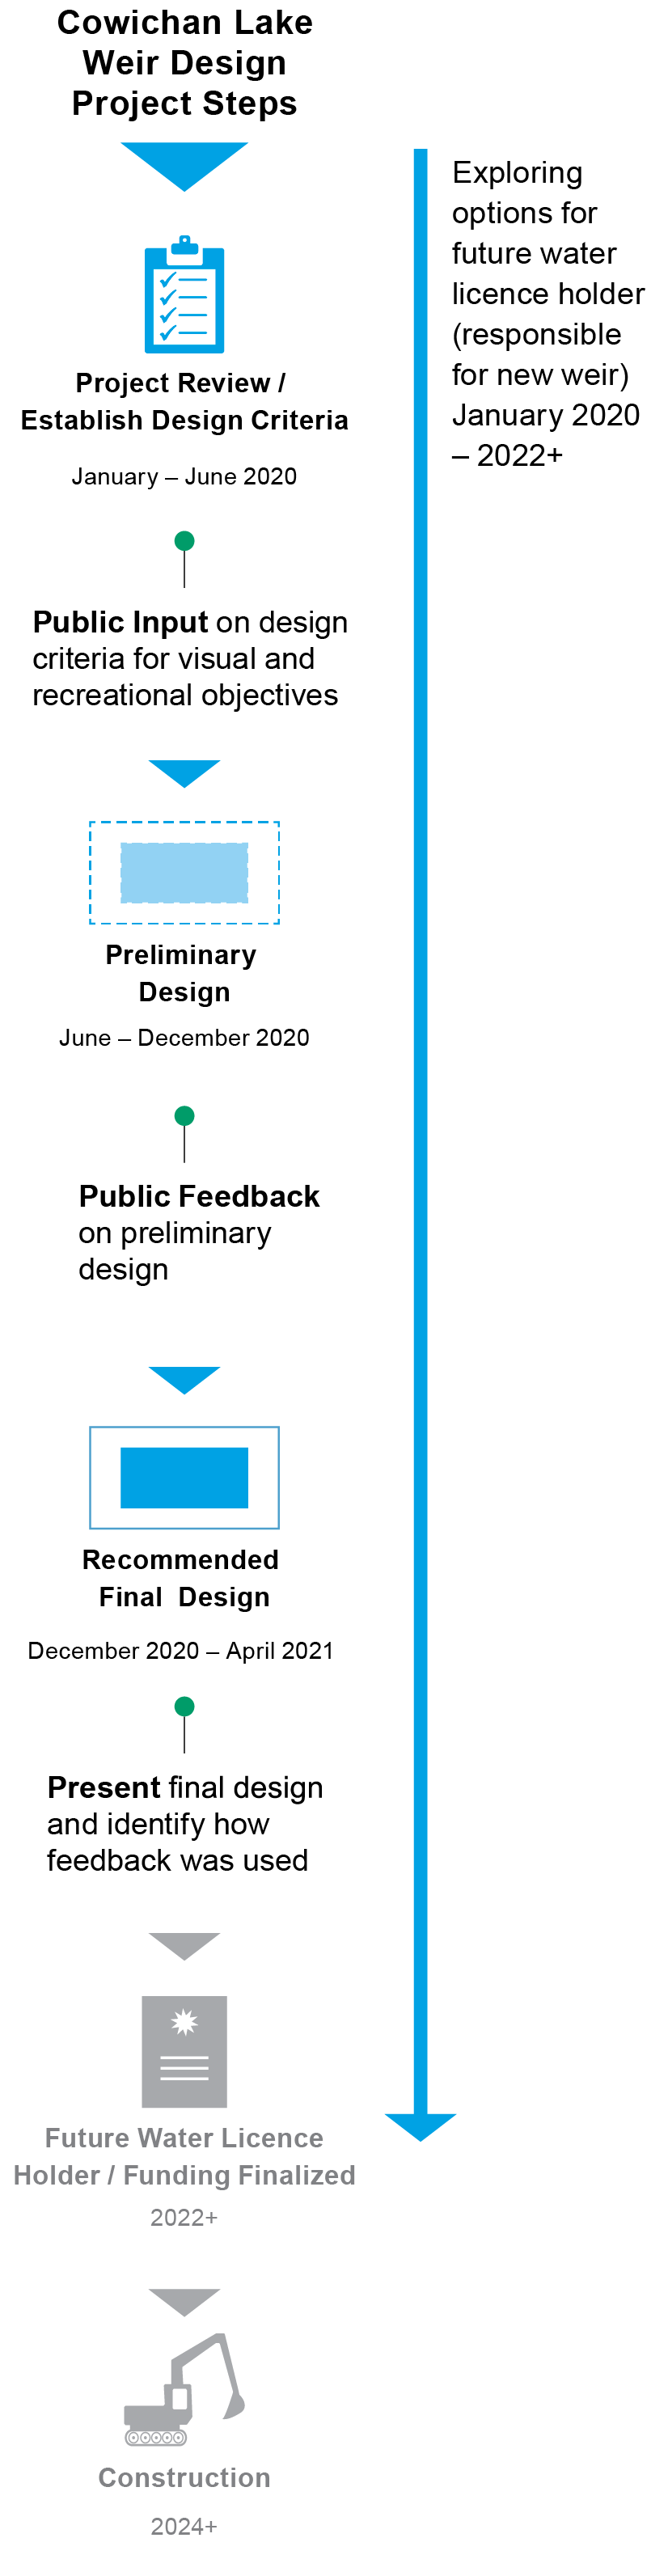 Graphic timeline of project steps